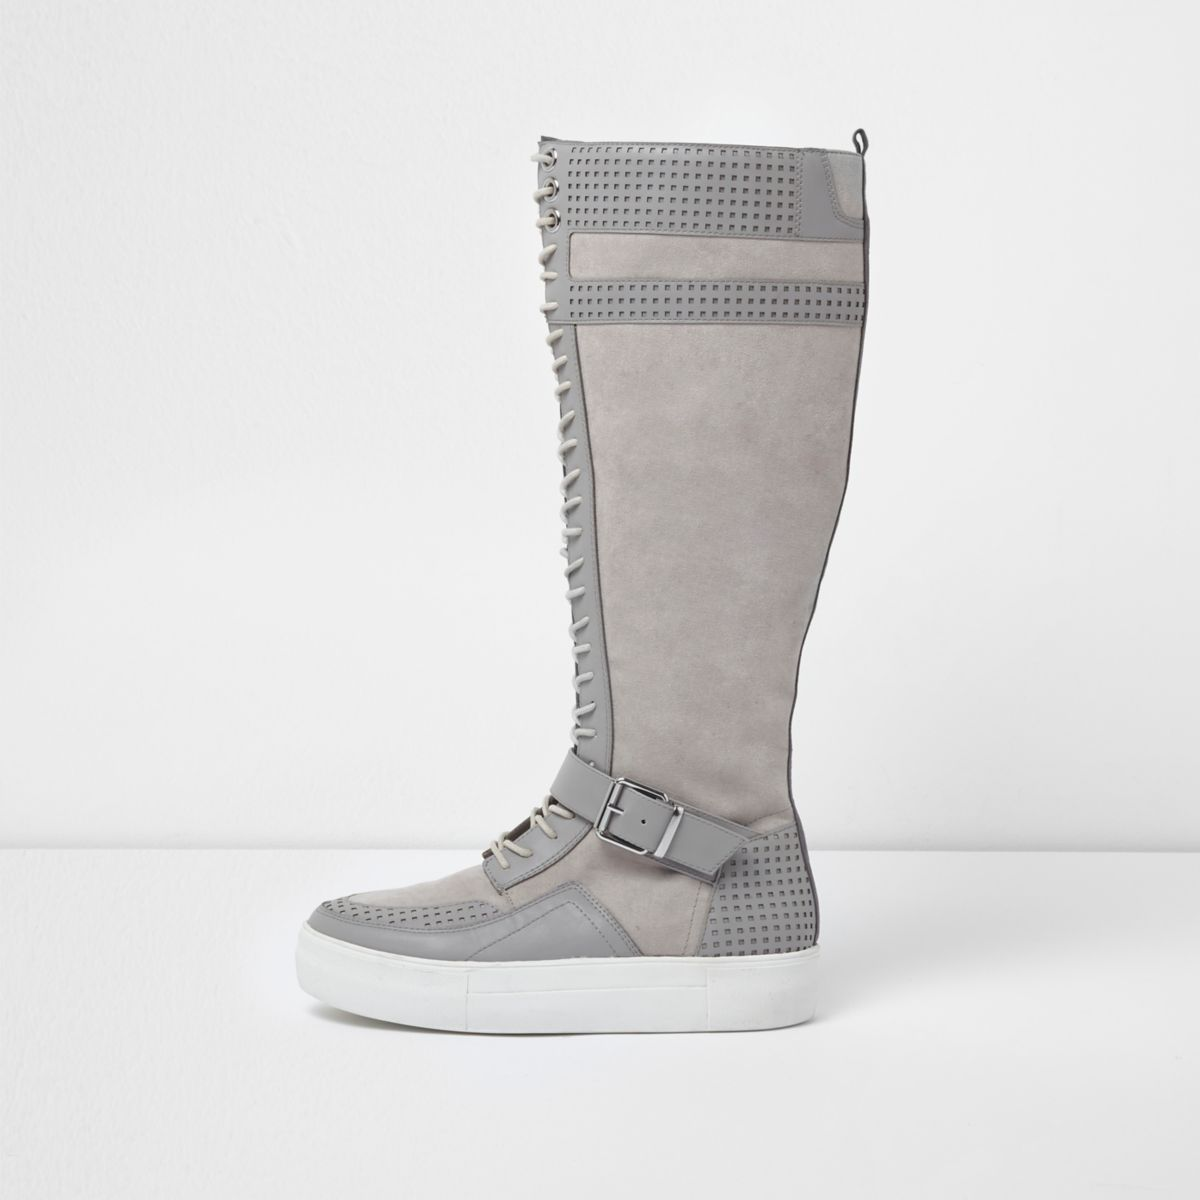 Grey lace-up flatform knee high trainers